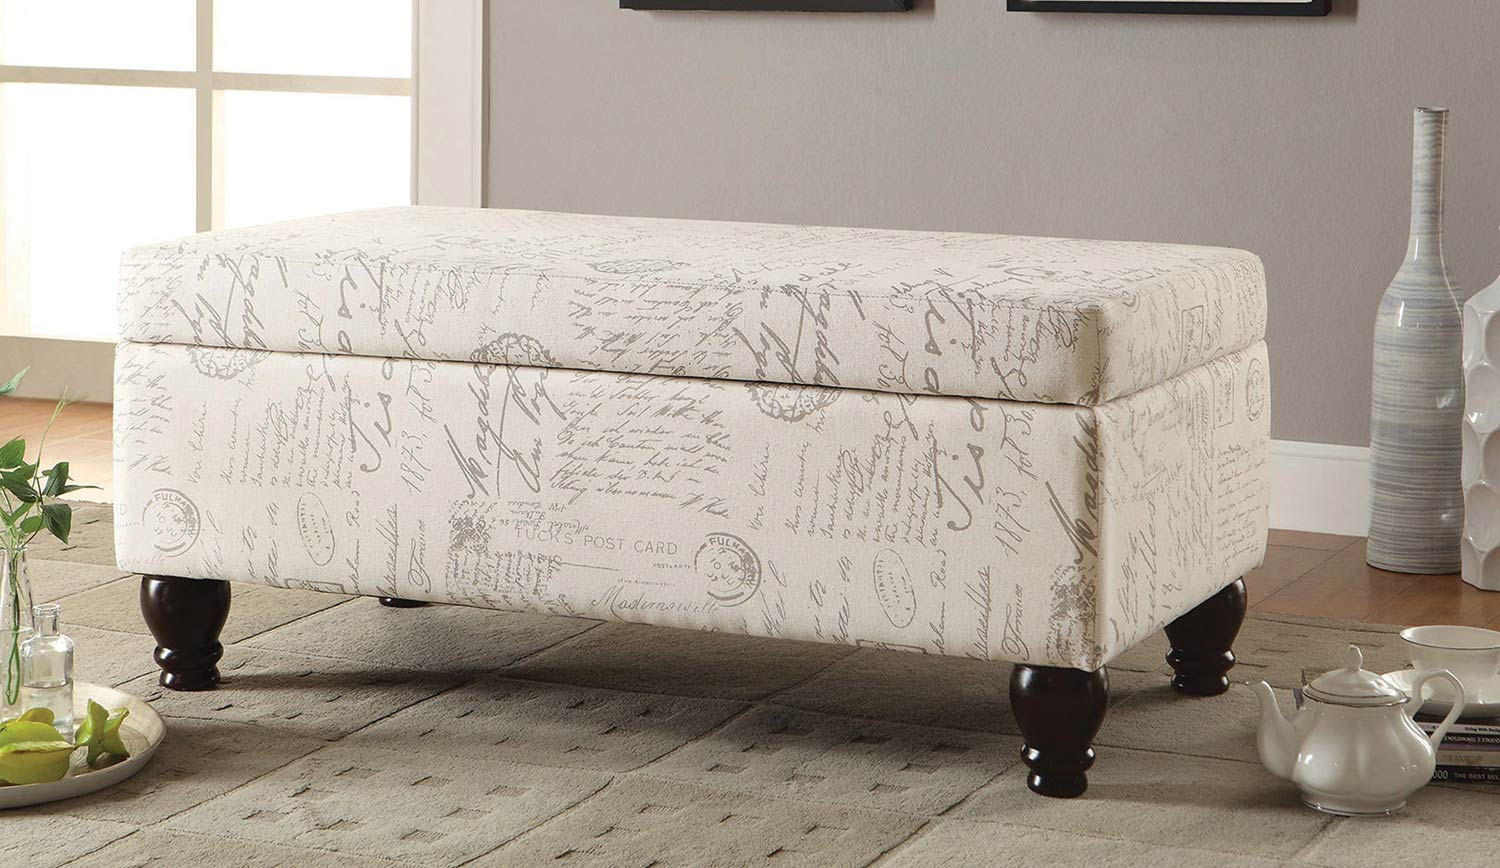 Coaster 500986 Storage Bench - Off White/Grey